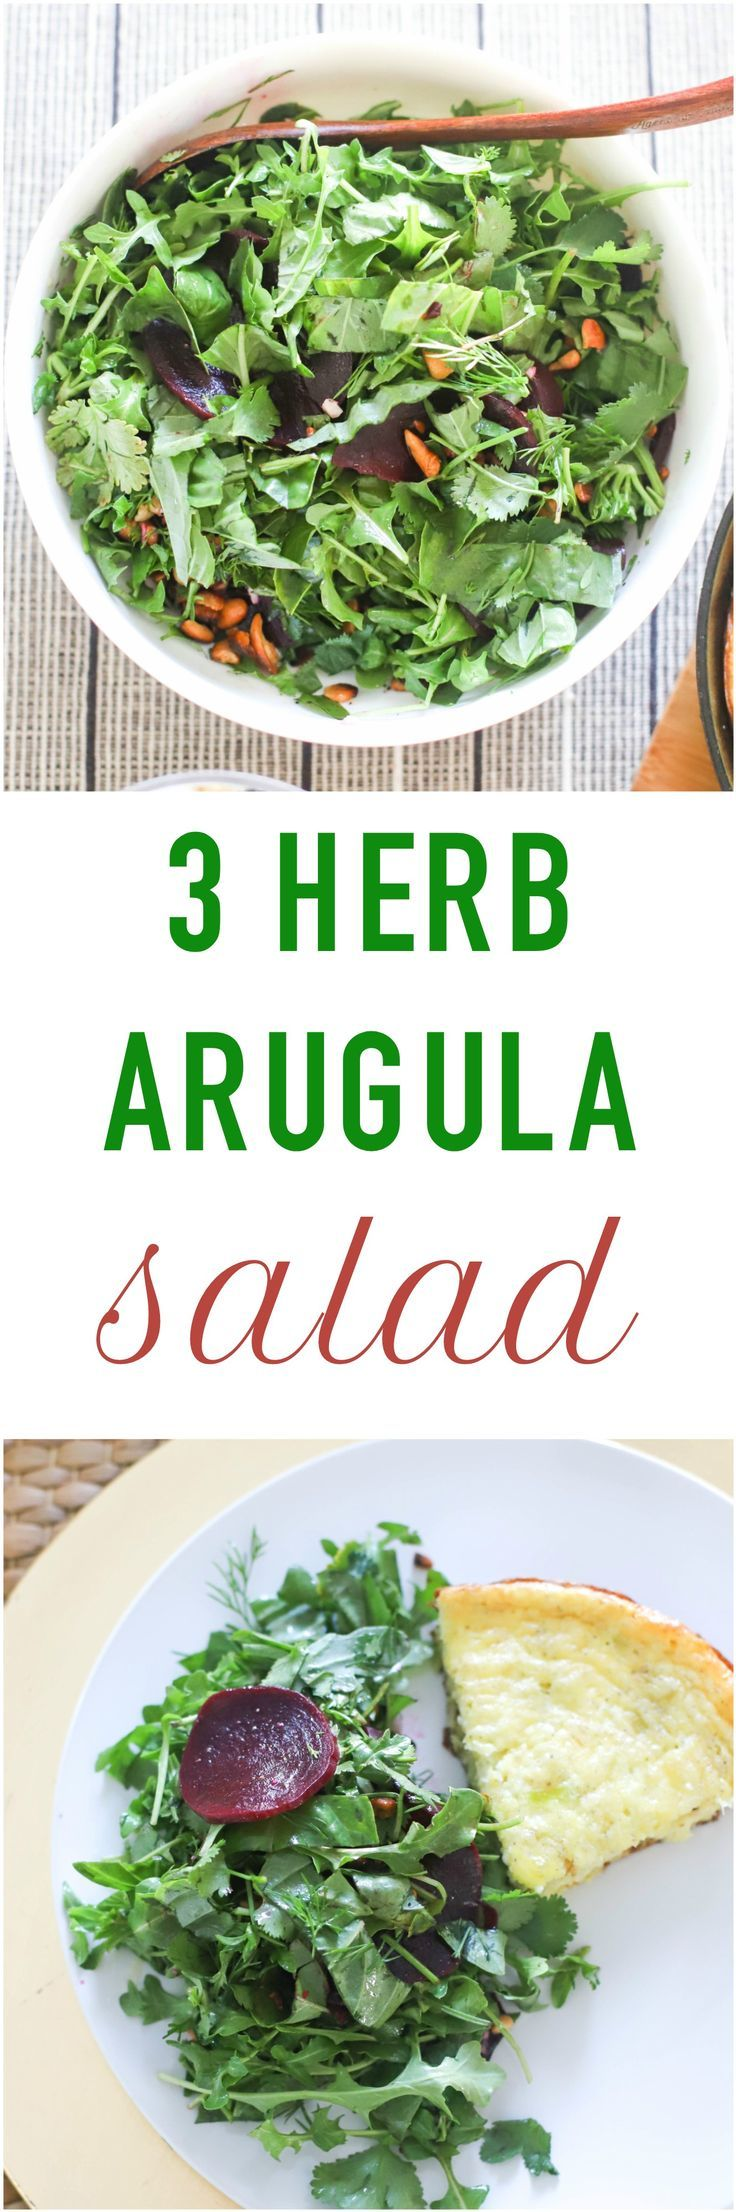 3 Herb and Arugula Salad is a vibrant salad with fresh herbs, peppery arugula, simple vinaigrette, and crunch from fried cashews! The recipe is naturally gluten-free, it can be adapted for vegans as well. Serve as a side salad or a refreshing lunch.